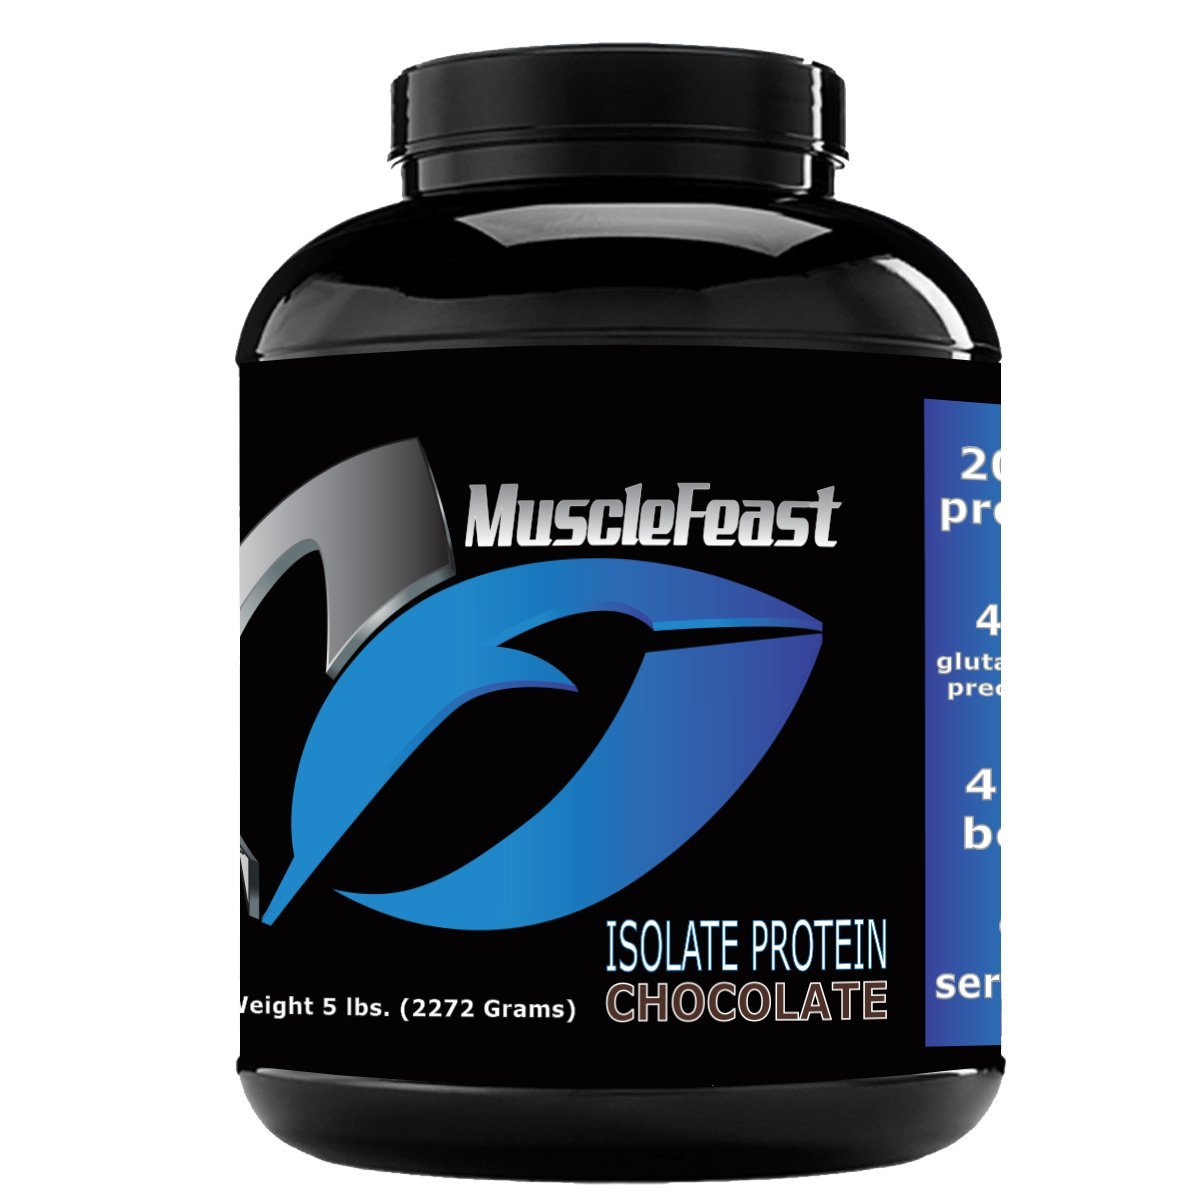 Grass Fed Whey Protein Isolate - by Muscle Feast | All Natural, Lactose Free and Hormone Free | NO Soy, Gluten or GMOs | 4.6g of BCAA's Per Serving (5lb, Chocolate)